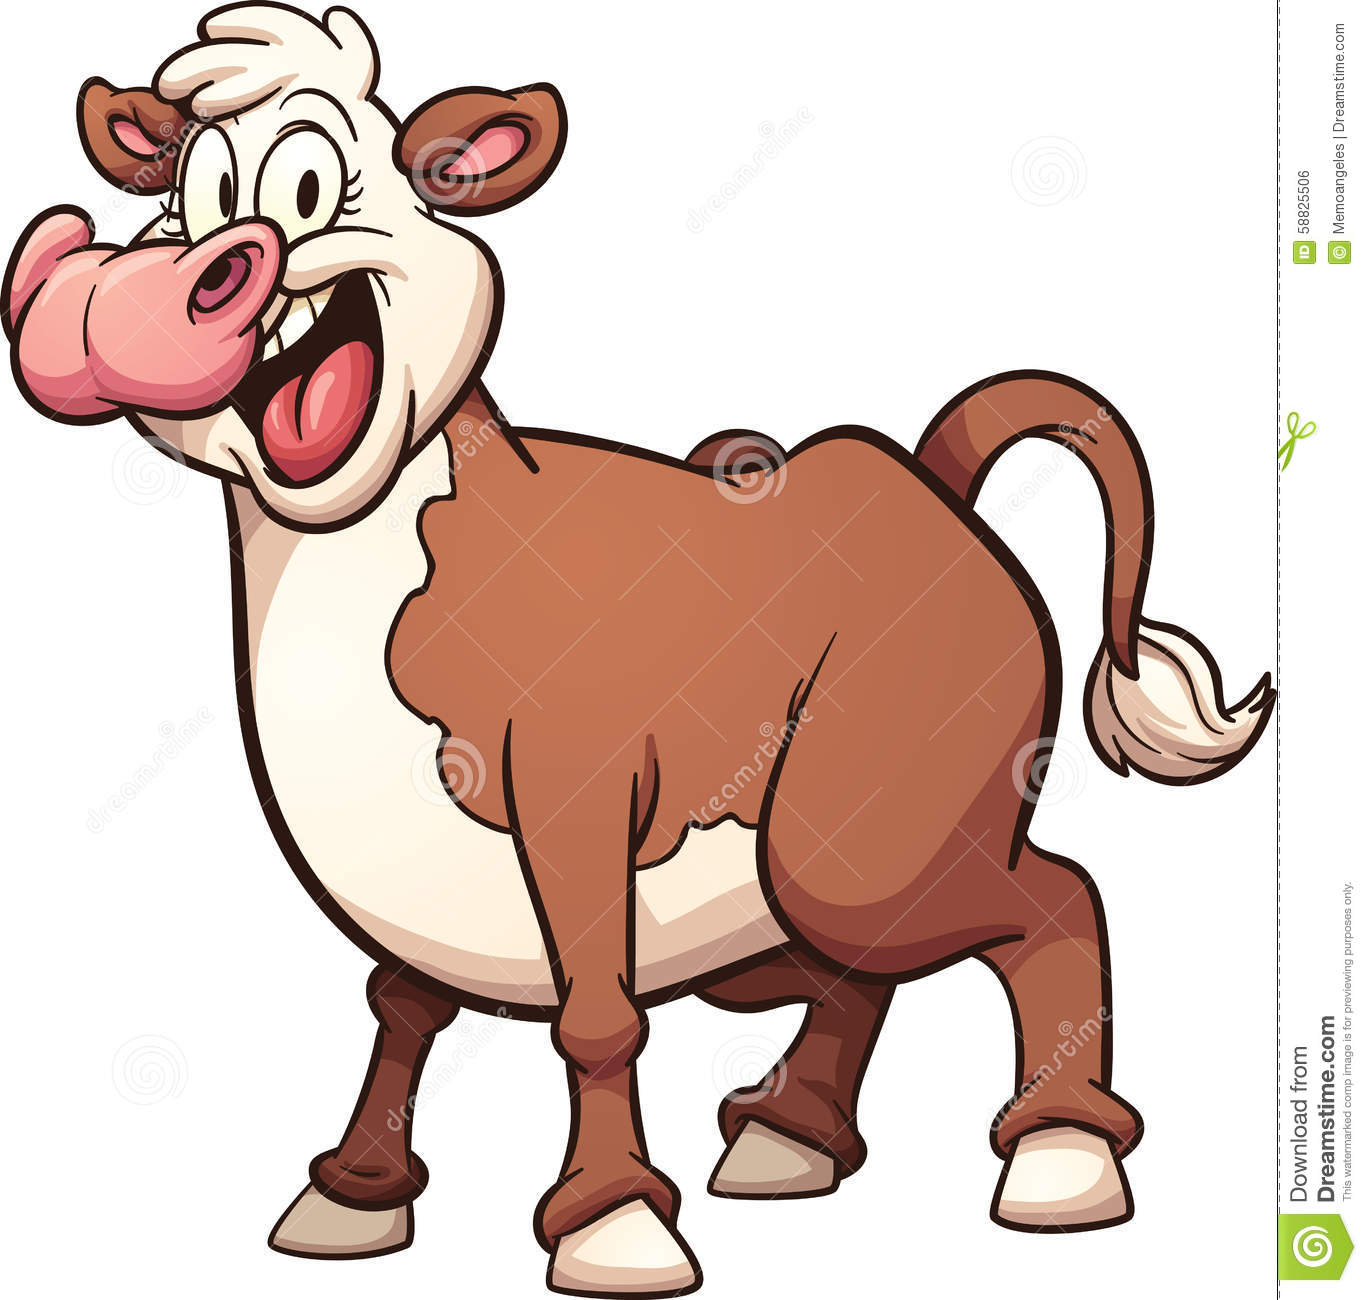 cow clipart simple - photo #20